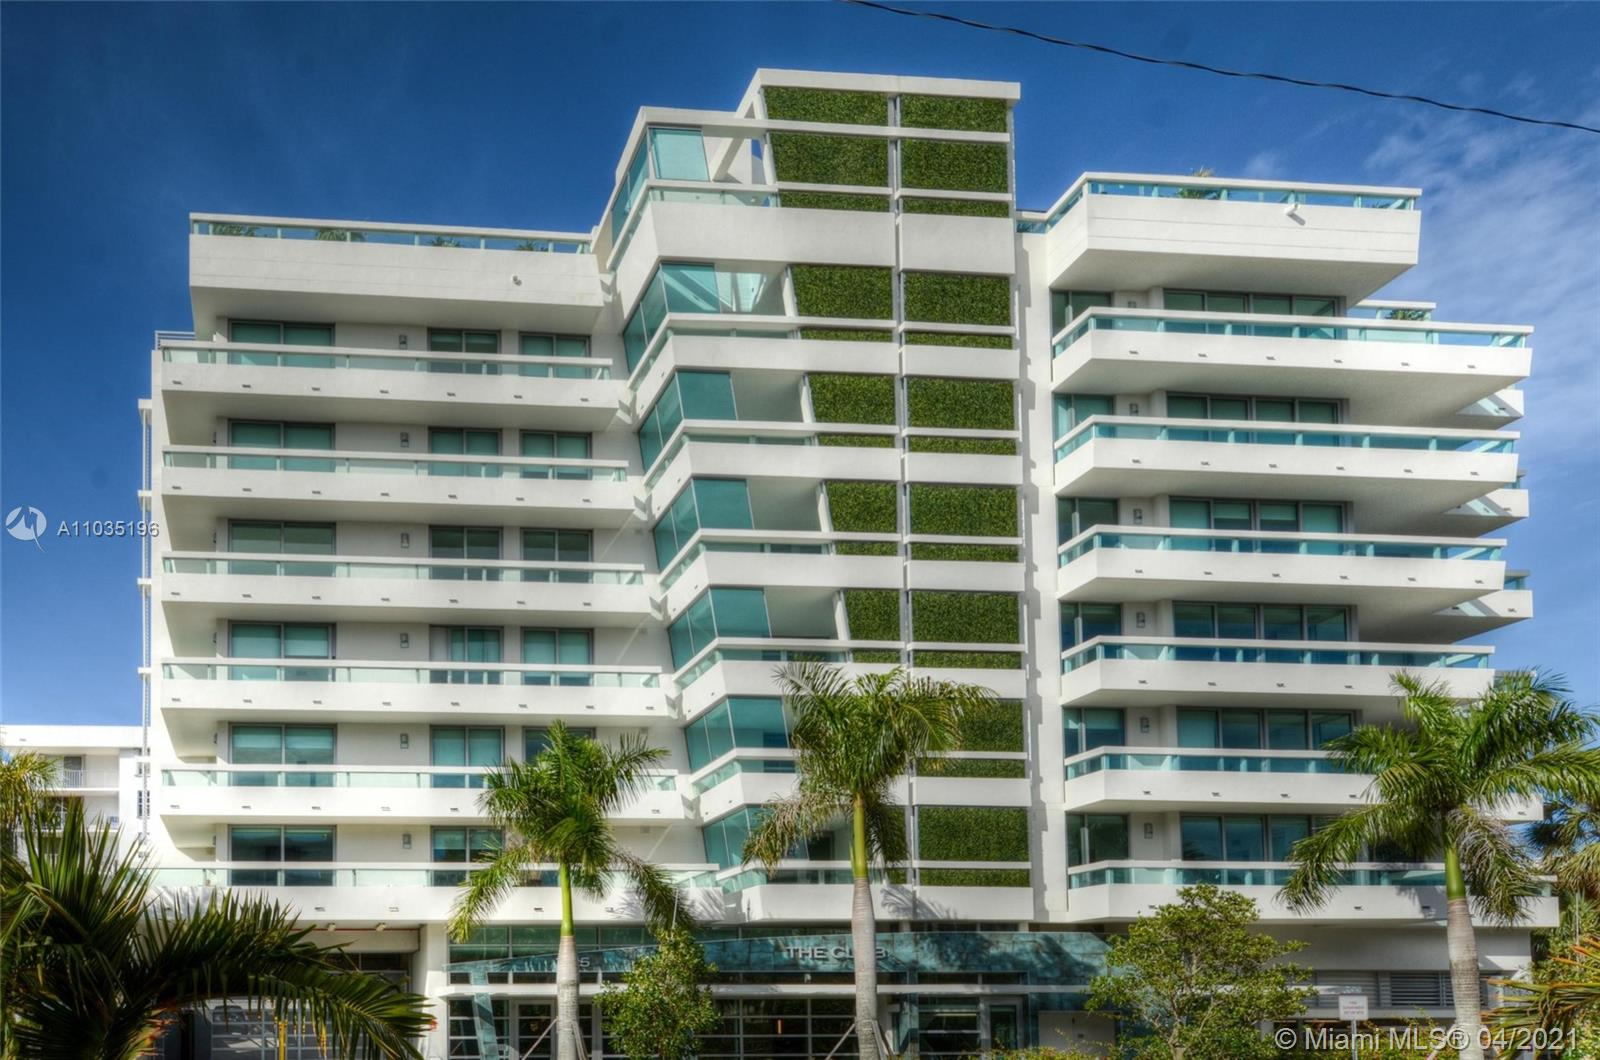 **LOCATED IN THE HEART OF BAY HARBOR ISLAND***2 PARKING GARAGES INCLUDED**SE CORNER UNIT** This modern/elegant unit comes fully equipped with BOSCH appliances, wine cooler and washer/dryer combo. Lots of natural light from floor to ceiling windows and slighting doors. Additional storage included. Fabulous rooftop deck featuring infinity pool, Jacuzzi, BBQ/ entertainment area. Blocks away from great public schools, Bal Harbour Shops and Beaches.